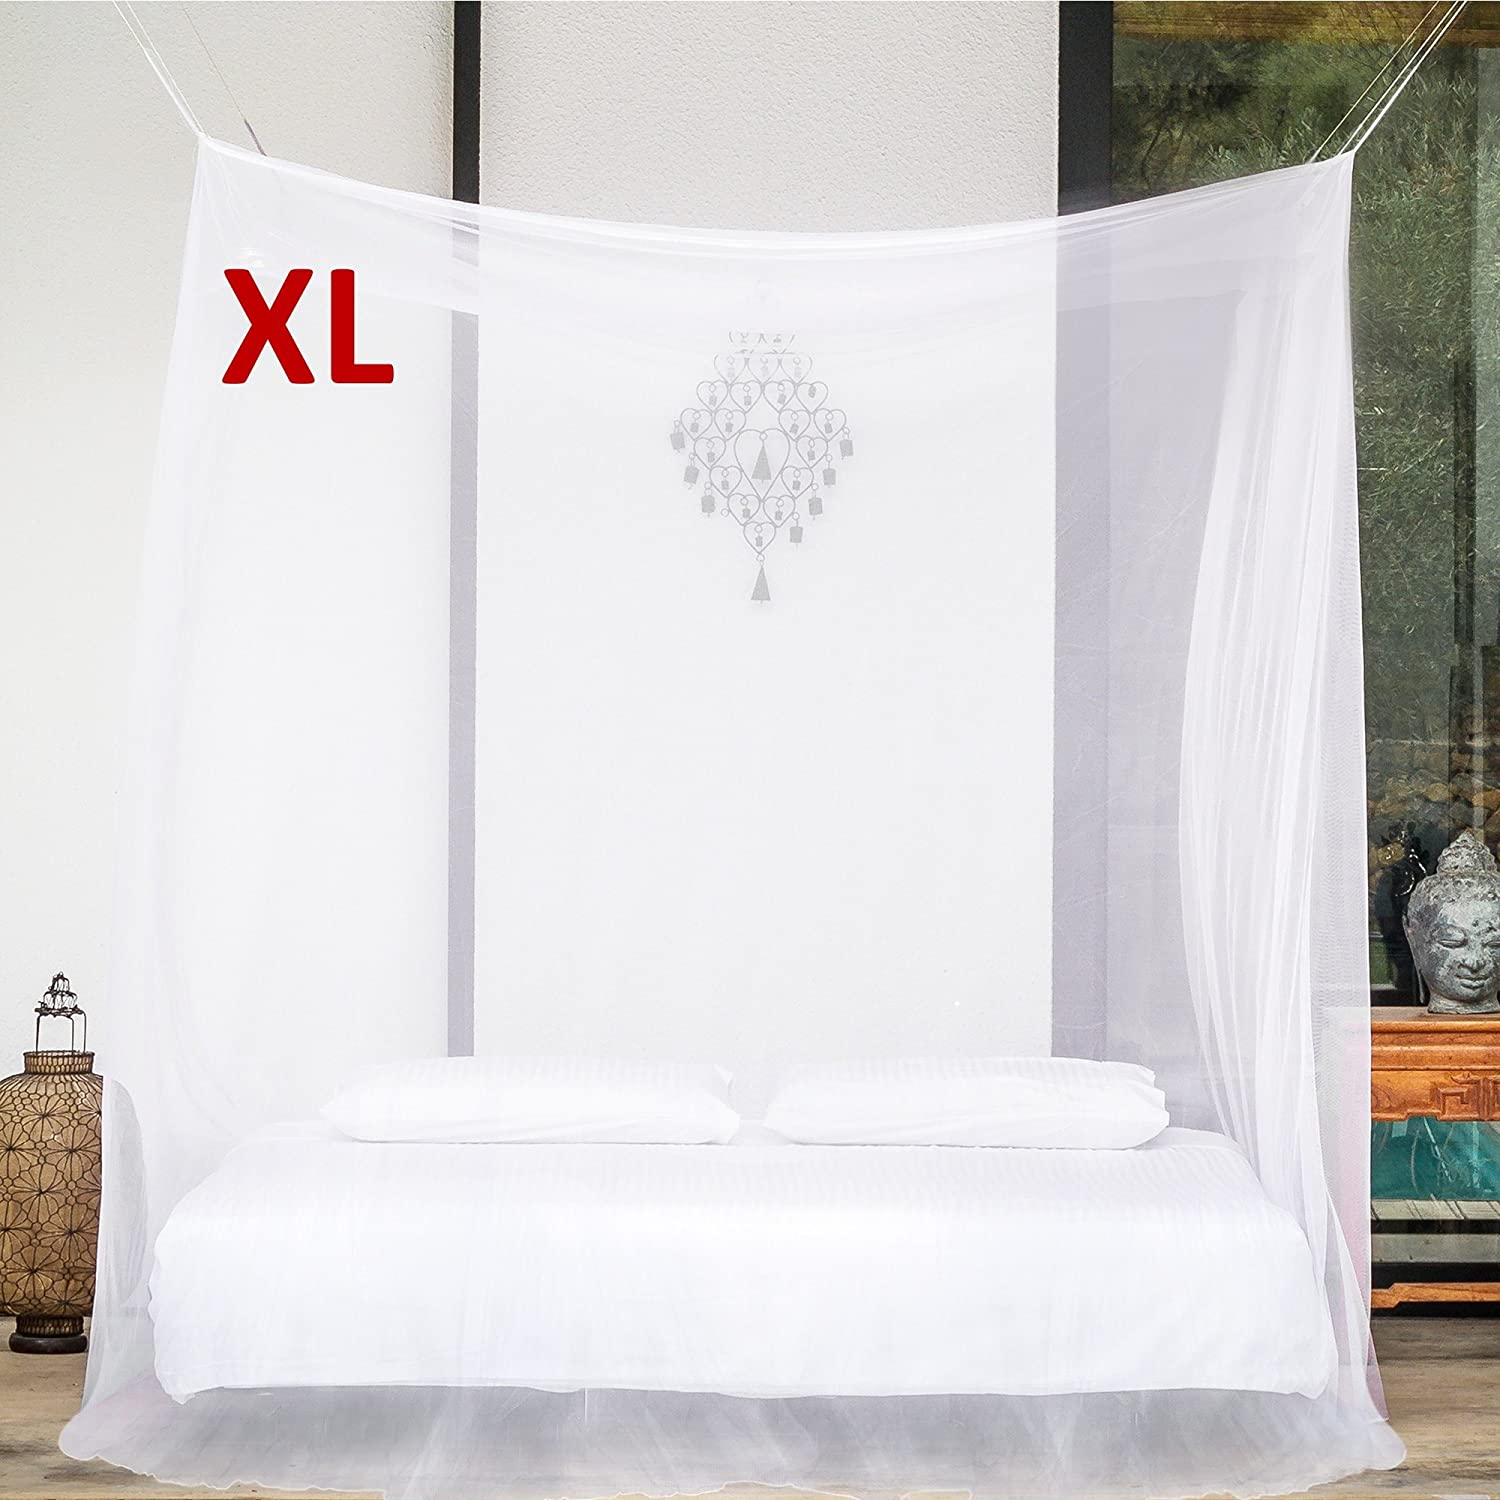 EVEN Naturals MOSQUITO NET for Bed Canopy, Tent for Full, Double to Super King Size, EXTRA LARGE Square Curtains, White Mosquito Netting with 2 Openings, Easy Installation, Carry Bag ENMNRLWN